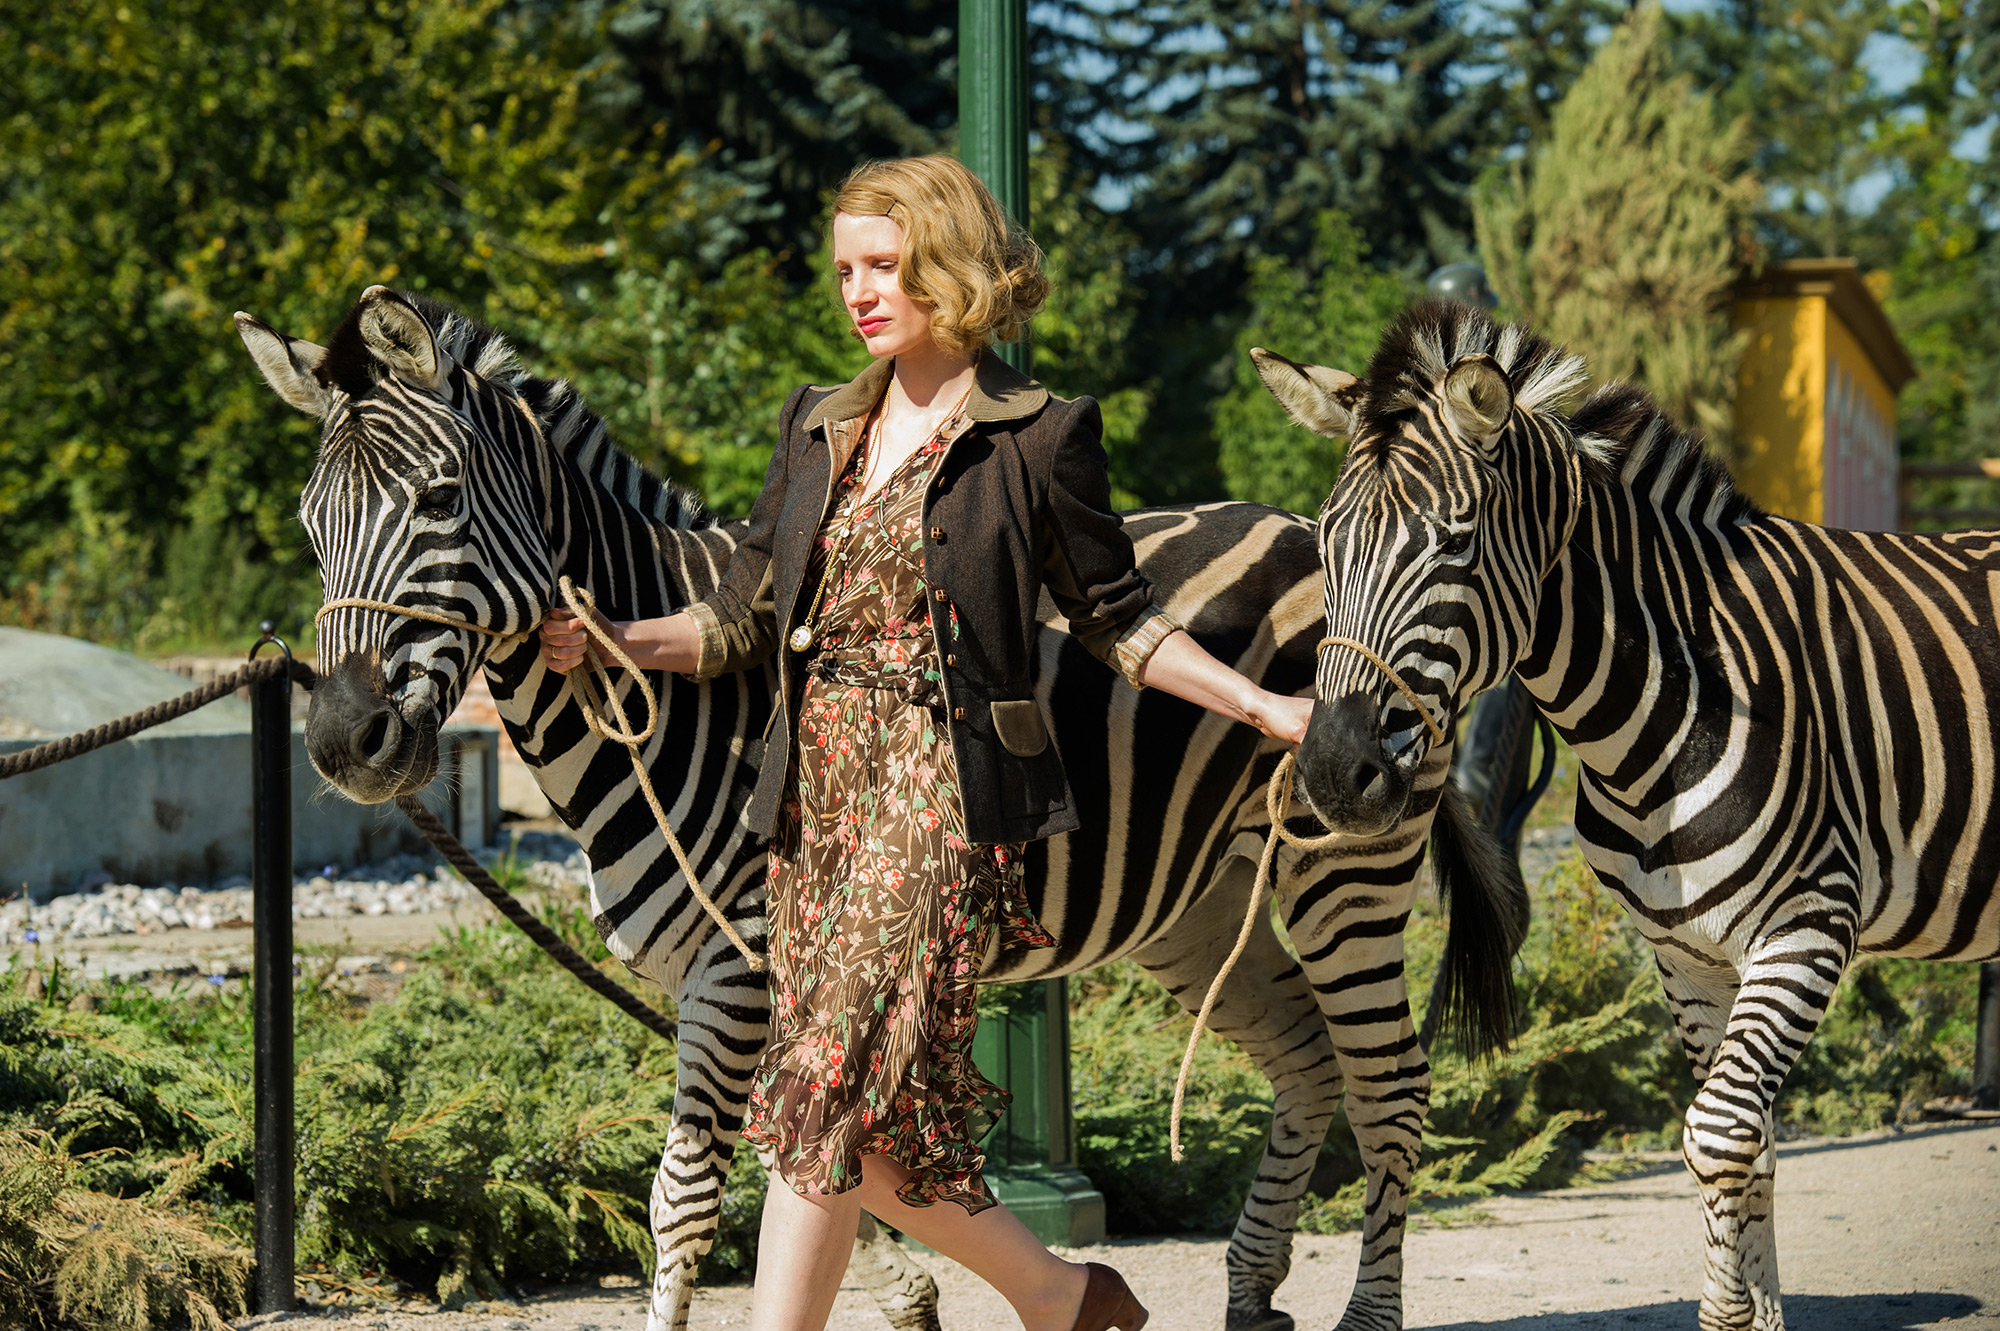 Jessica-Chastain-The-Zookeepers-Wife